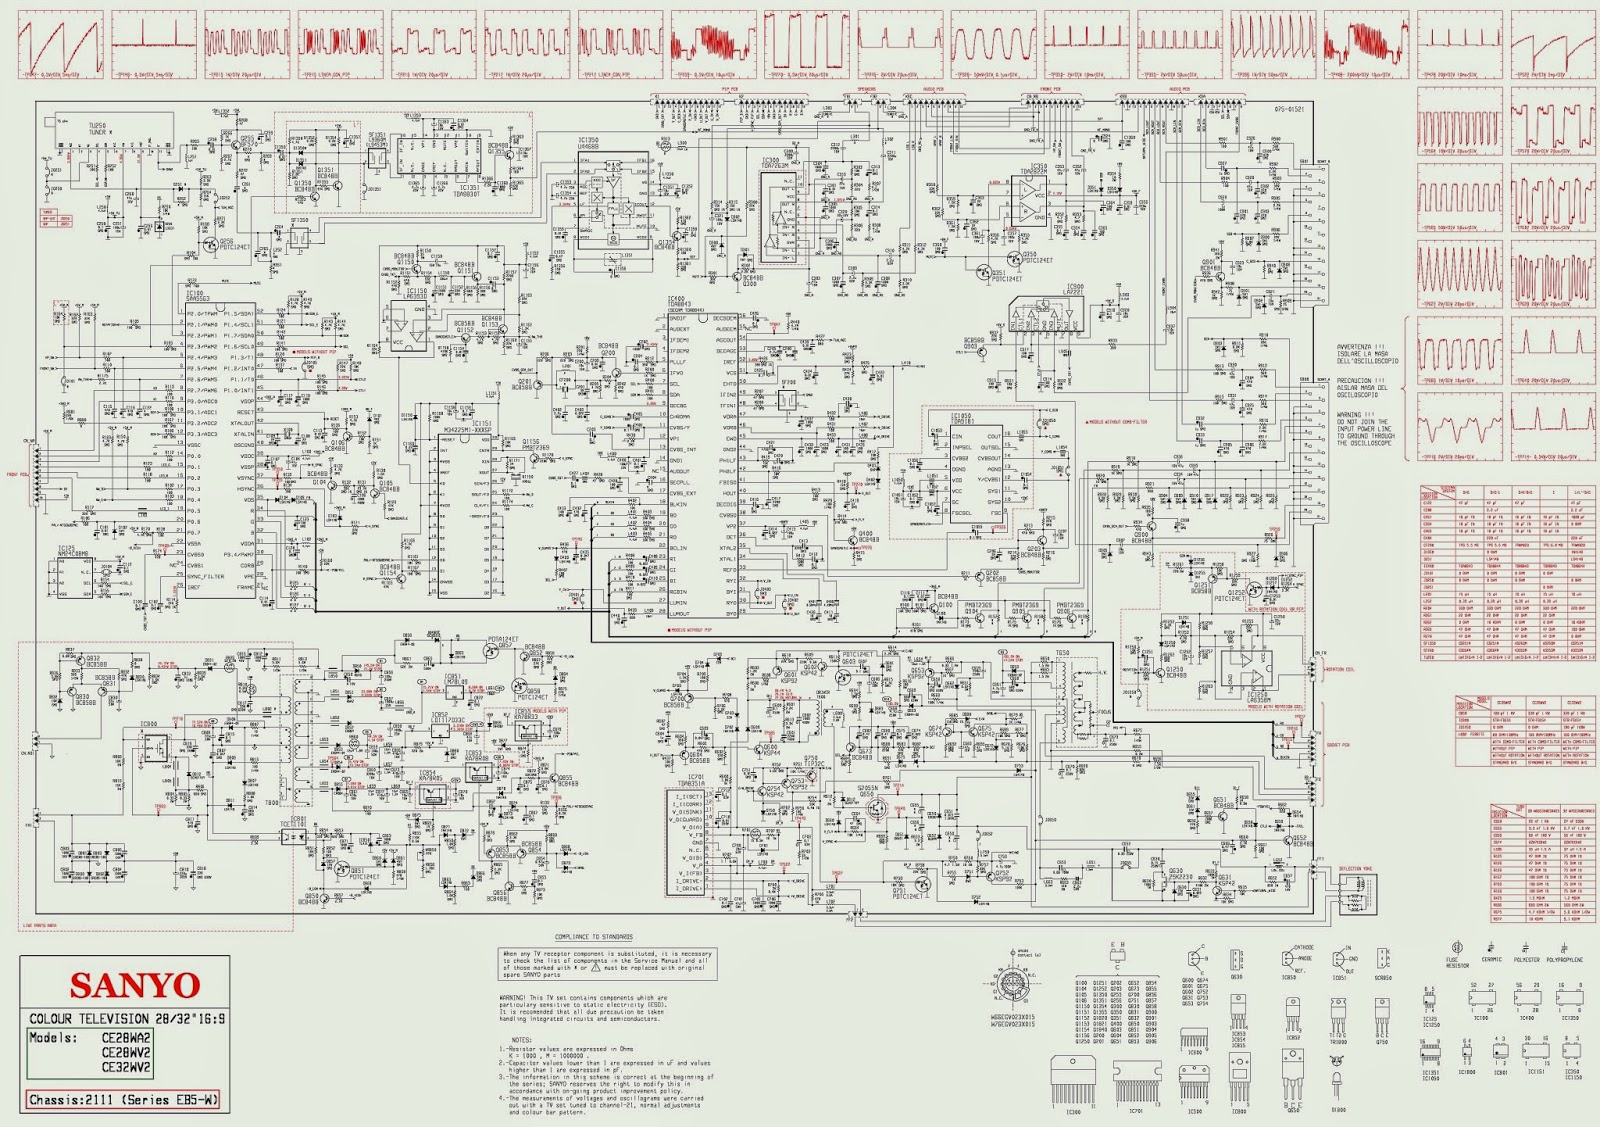 Sanyo Tv Circuit Diagram Great Design Of Wiring T V Schematic Diagrams With Ics Galaxy Elsavadorla Bpl